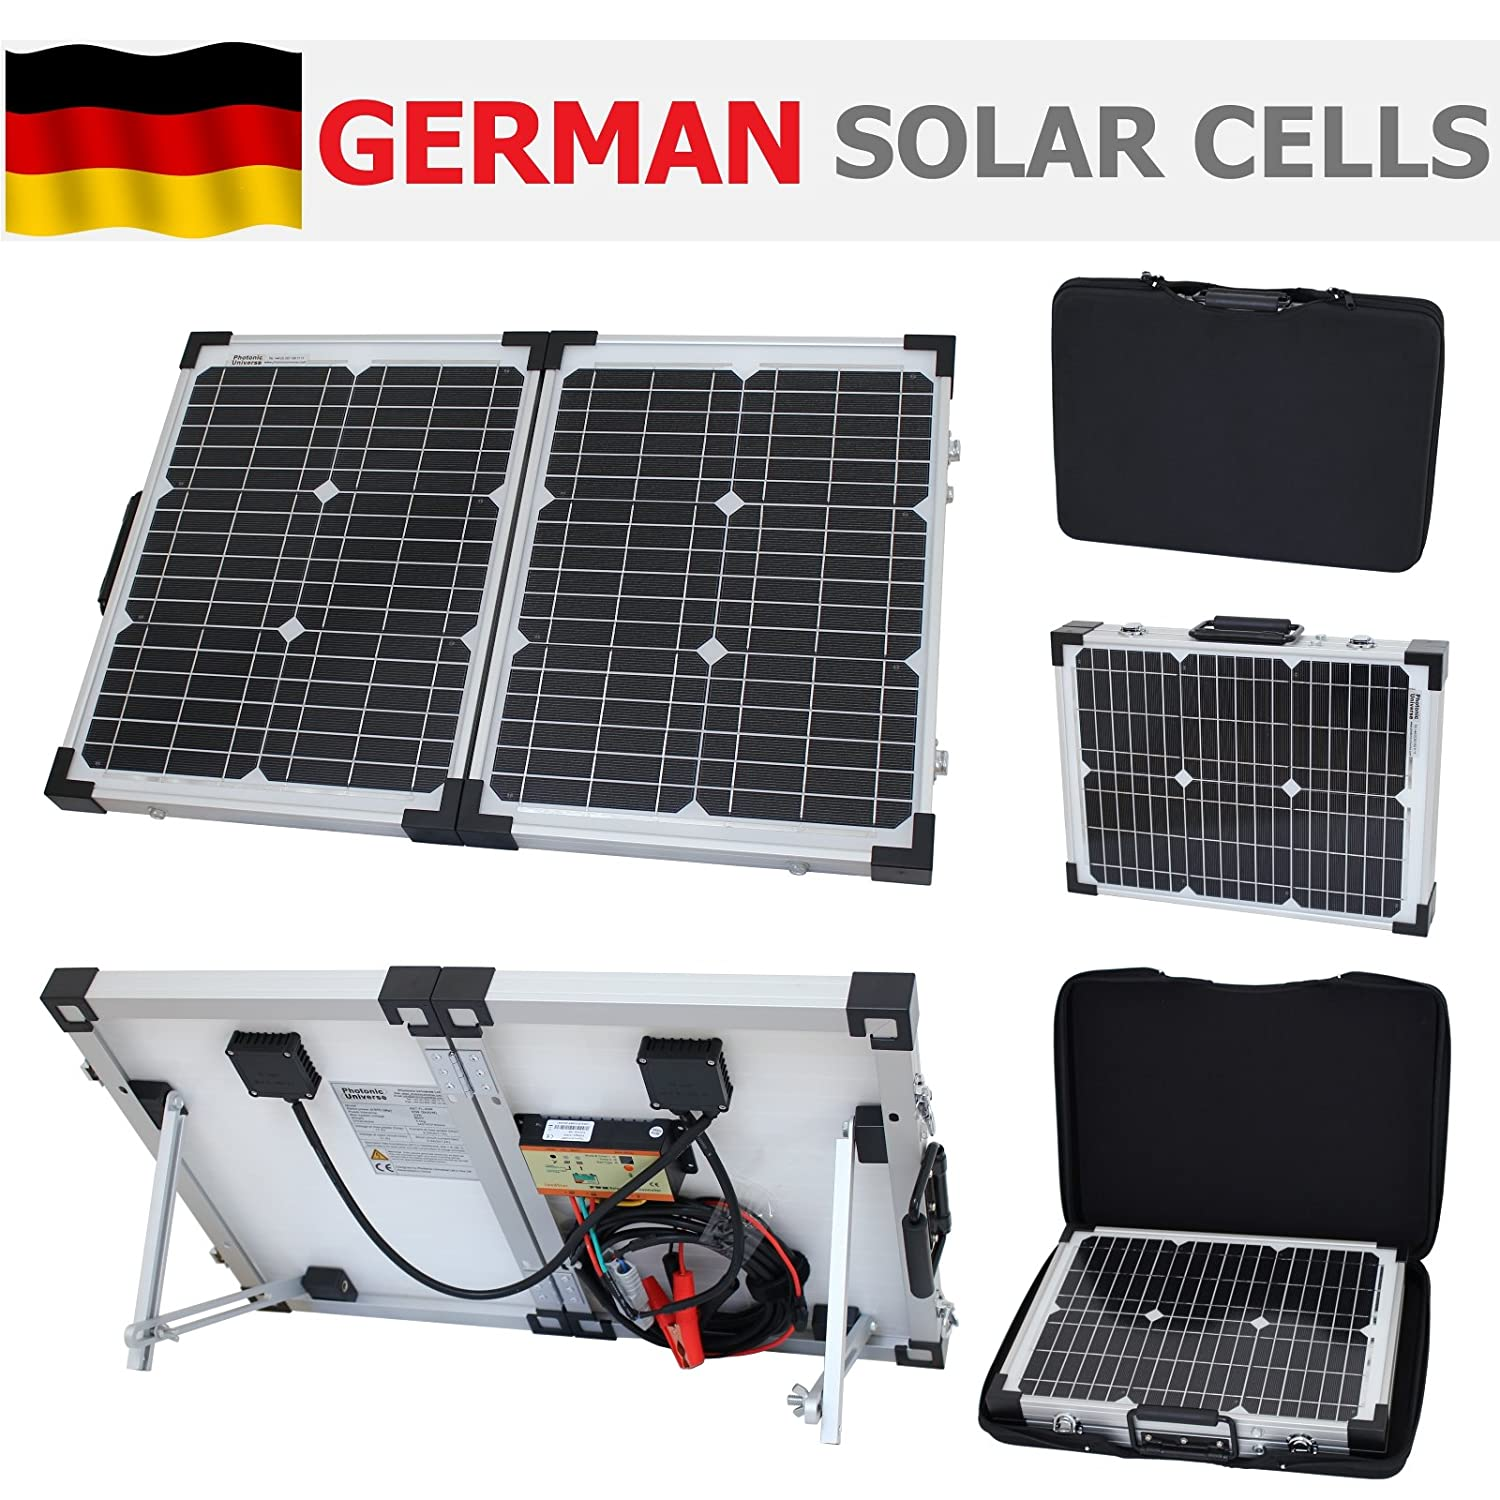 40W 12V Photonic Universe folding solar charging kit for a motorhome, caravan, campervan, car, van, boat, yacht - ideal for camping, caravanning, motorhome rallies, trade shows, mobile offices or any other off-grid 12V system (40 watt 12 volt) SWD-FWP-40M